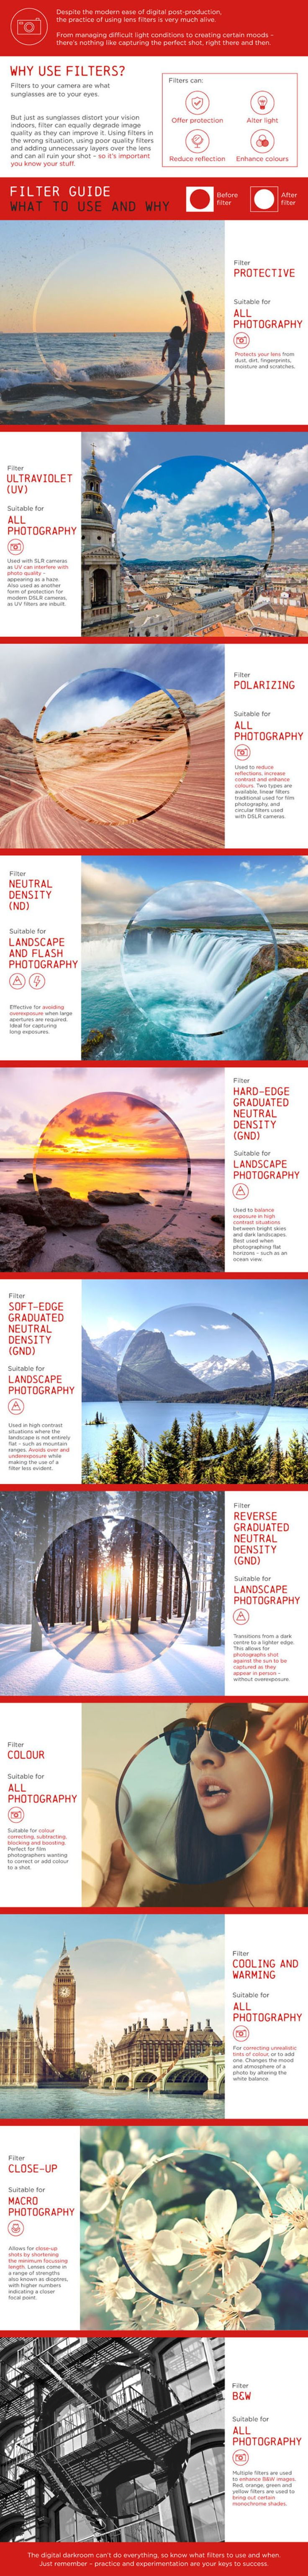 What Lens Filter To Use And Why | Infographic - UltraLinx